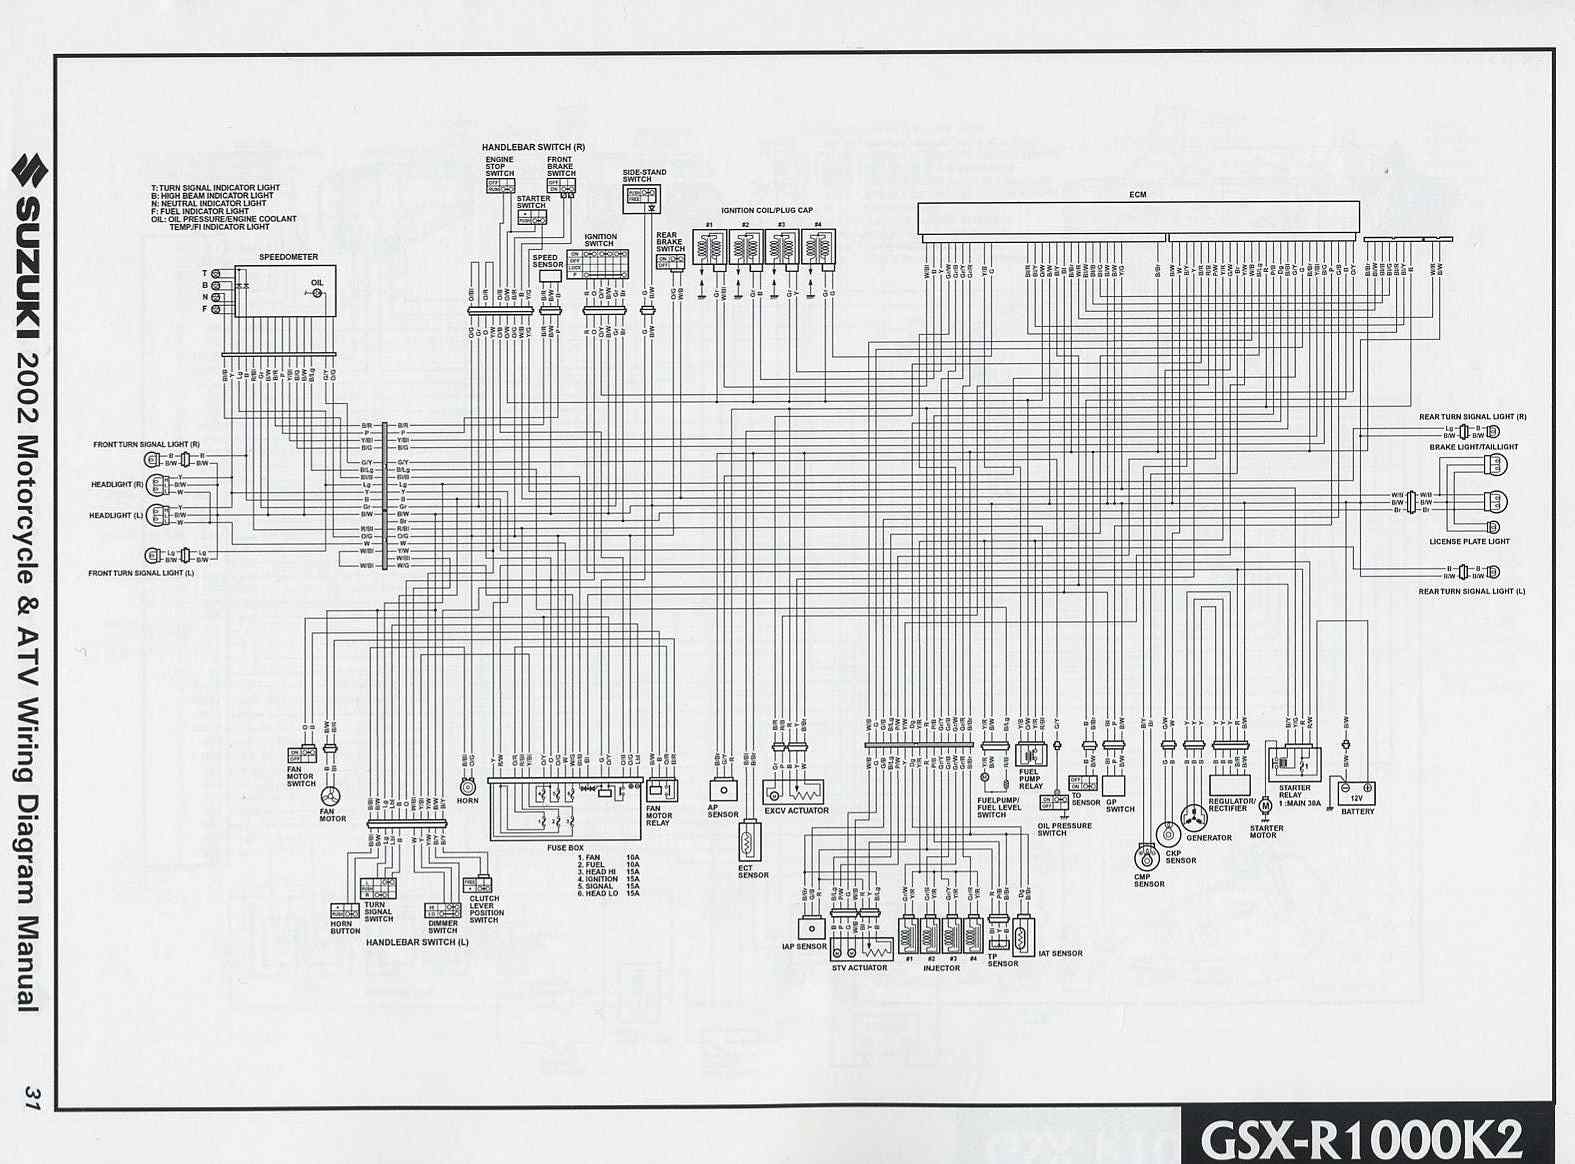 2002 ford explorer ignition wire diagram 2002 gsxr ignition wire diagram